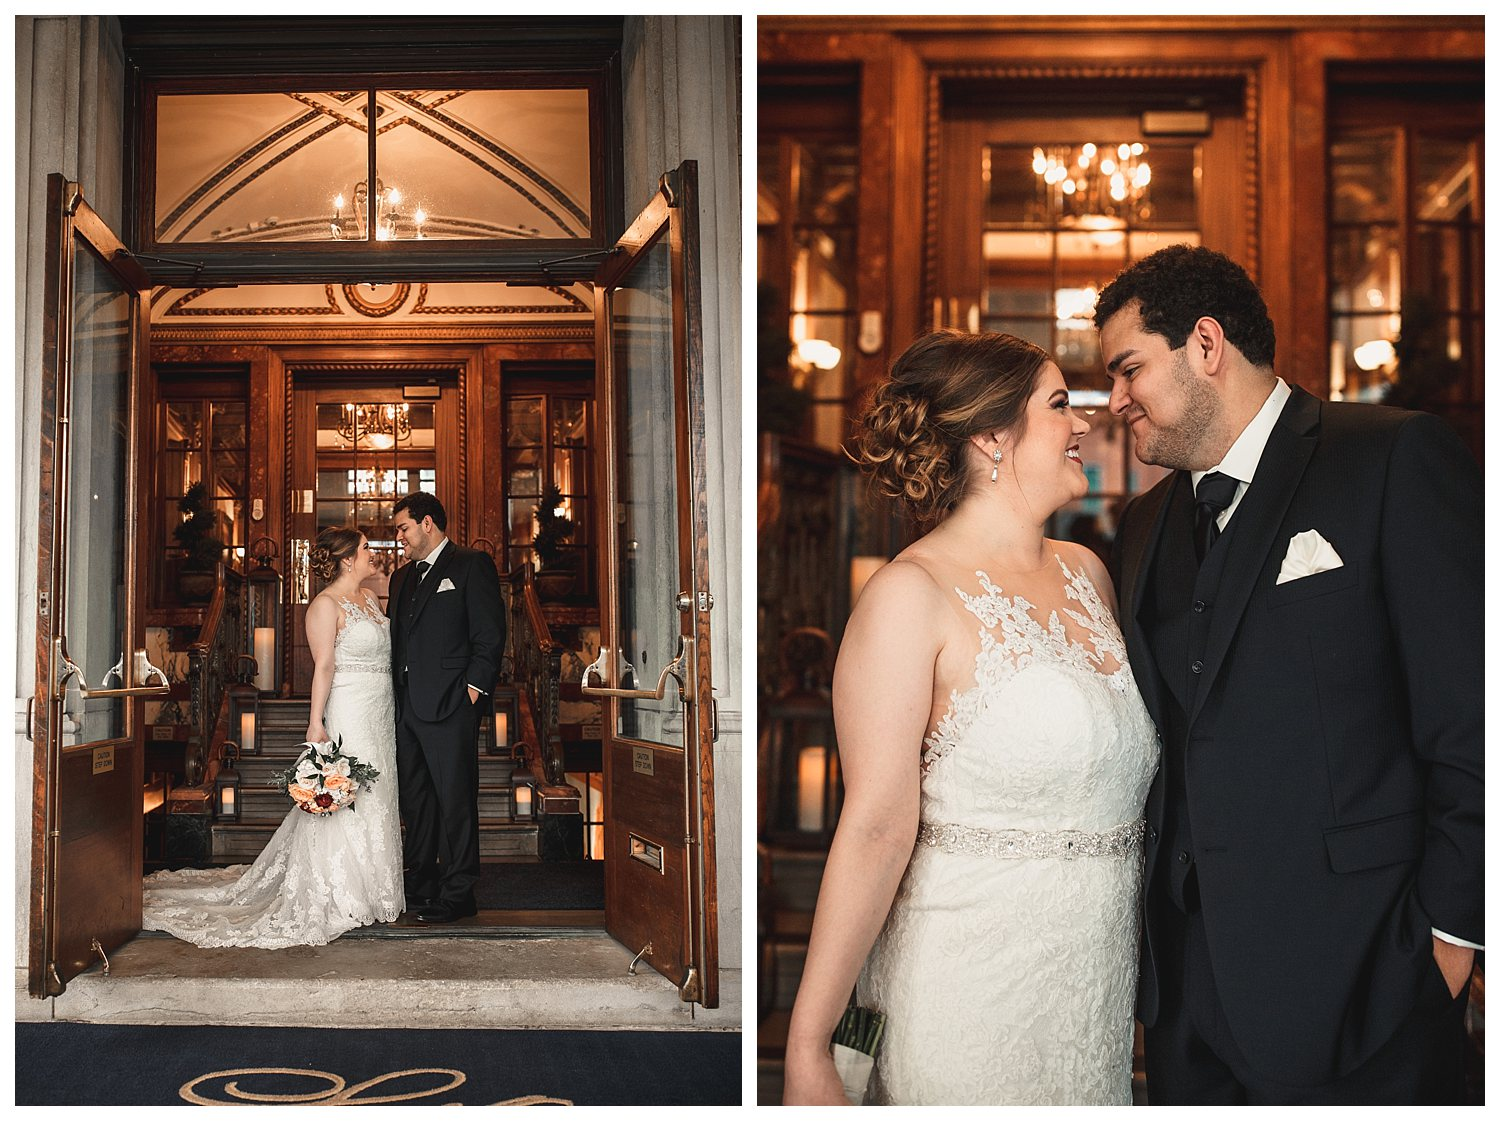 Kelsey_Diane_Photography_Loose_Mansion_Wedding_Photography_Kansas_City_Victor_Lyndsay_0132.jpg